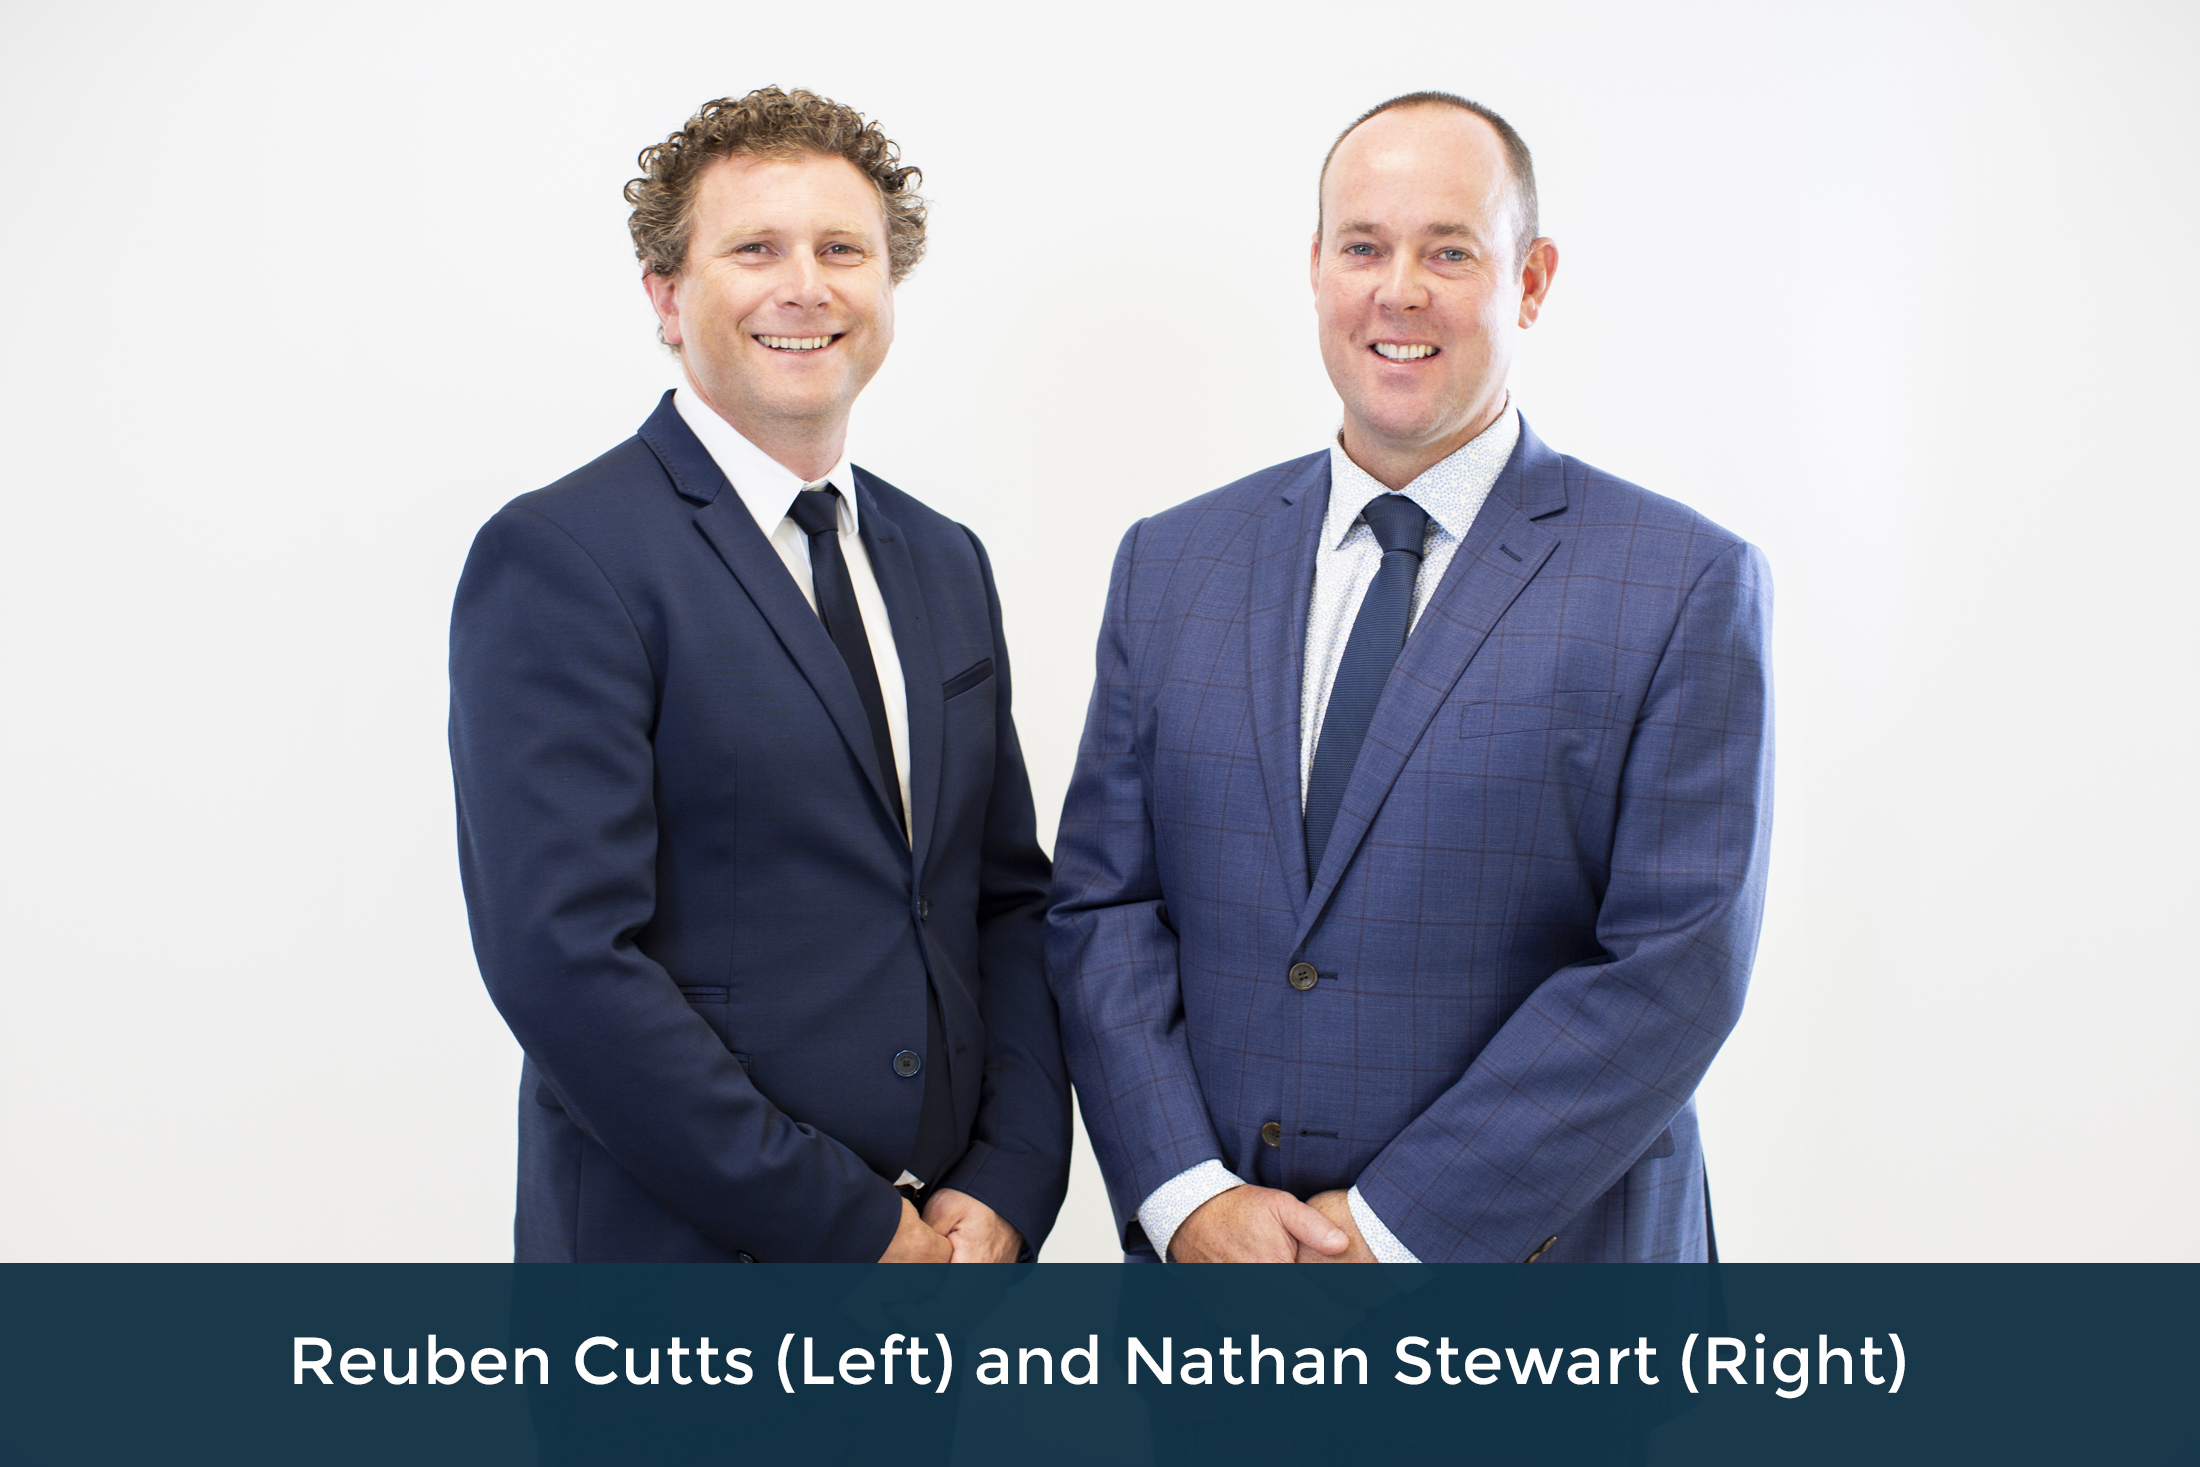 Reuben Cutts (Left) and Nathan Stewart (Right)